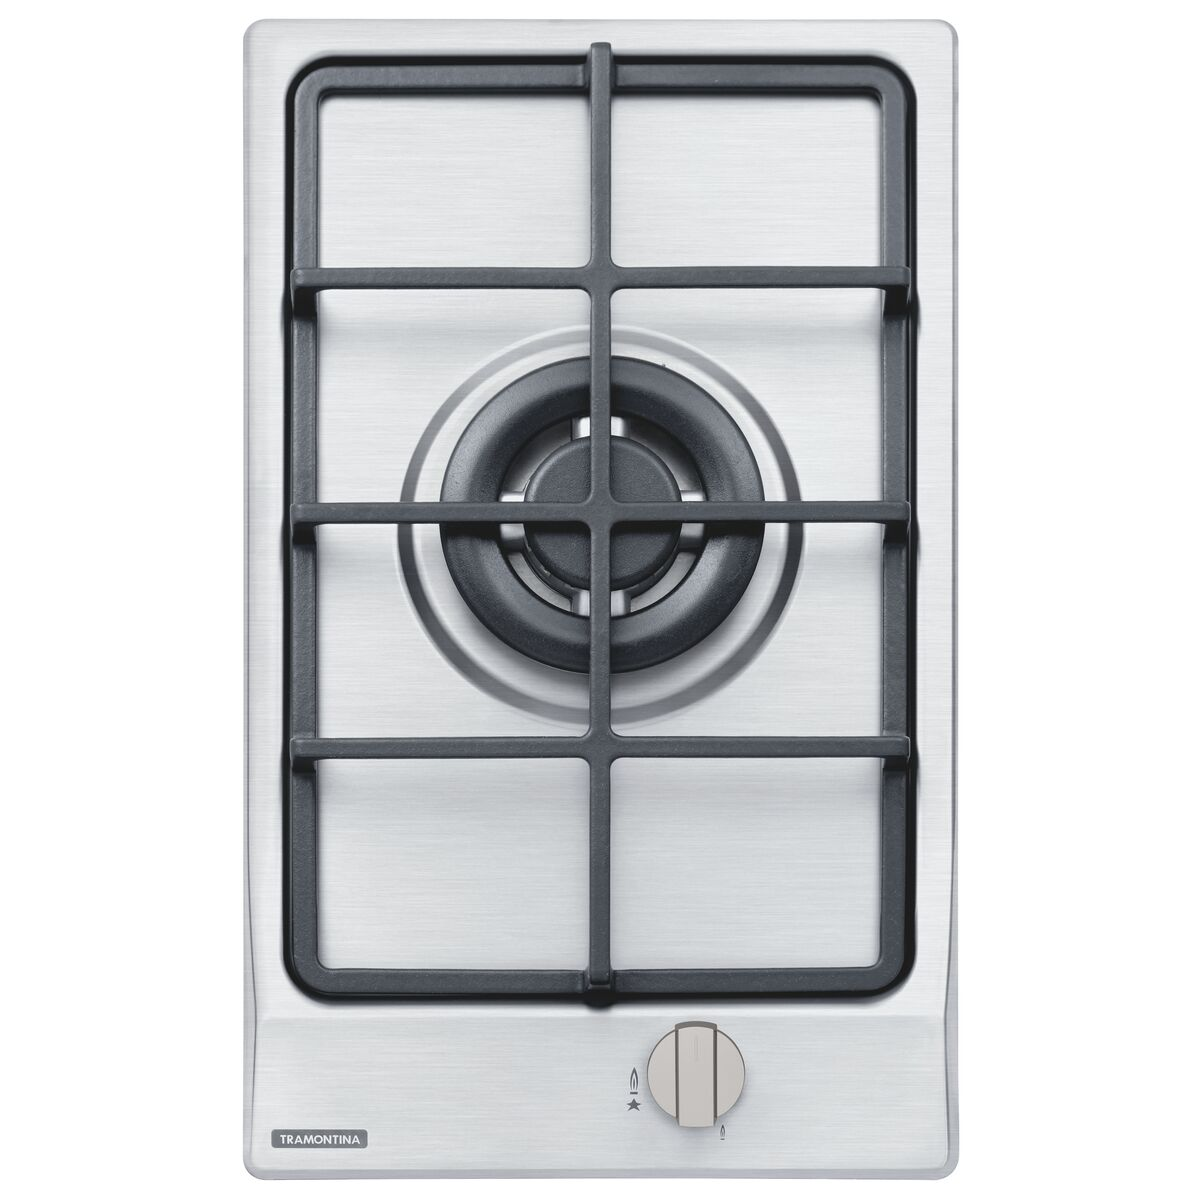 Tramontina Stainless Steel Gas Cooktop With Cast Iron Trivets Super Automatic Switch On And 1 Burner Tramontina